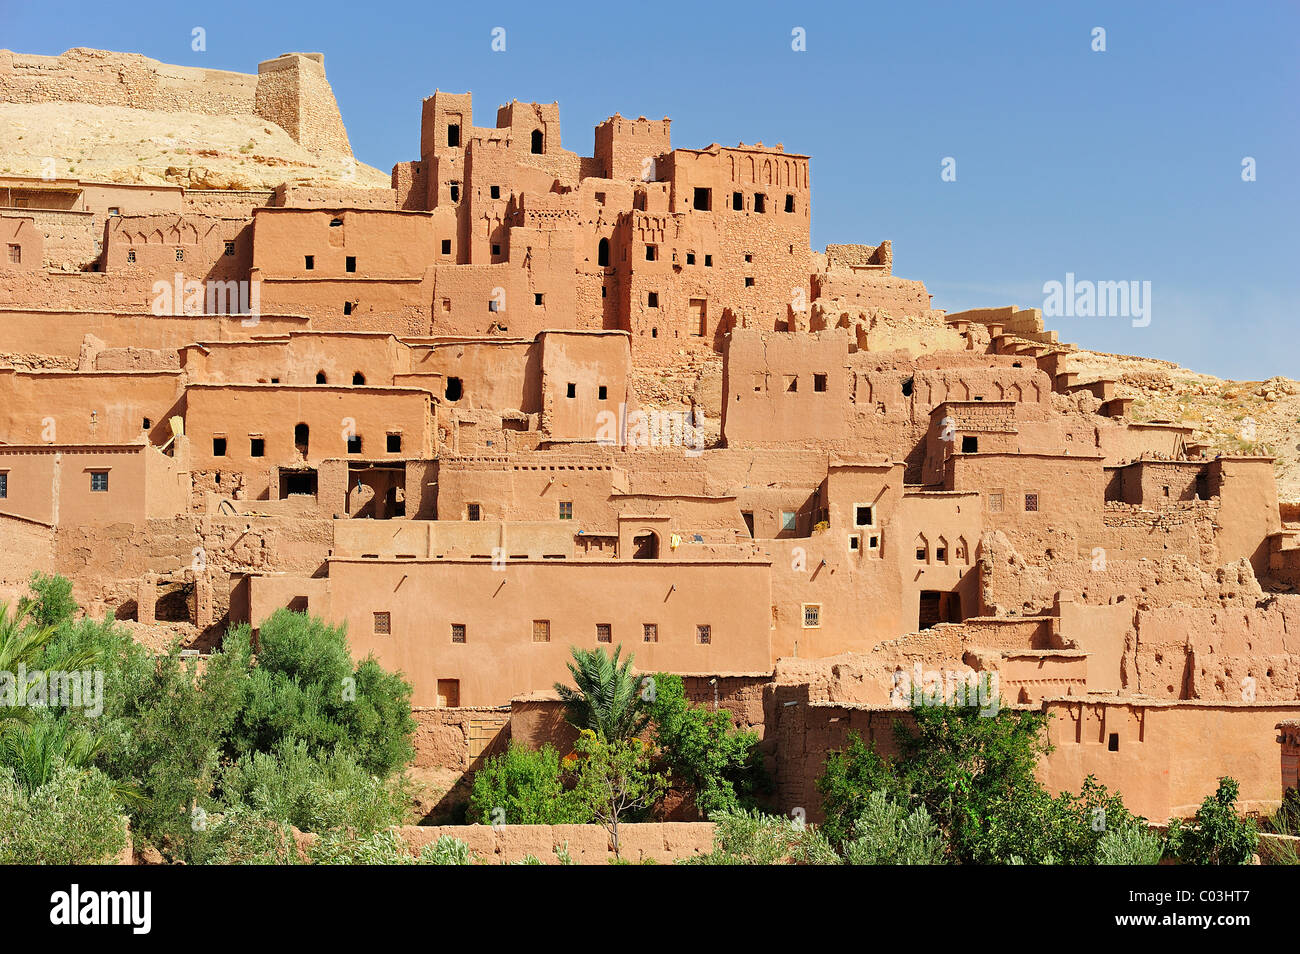 Mud-brick city of Ksar Ait Benhaddou with many Kasbahs, residential castles of the Berbers, built interconnected - Stock Image